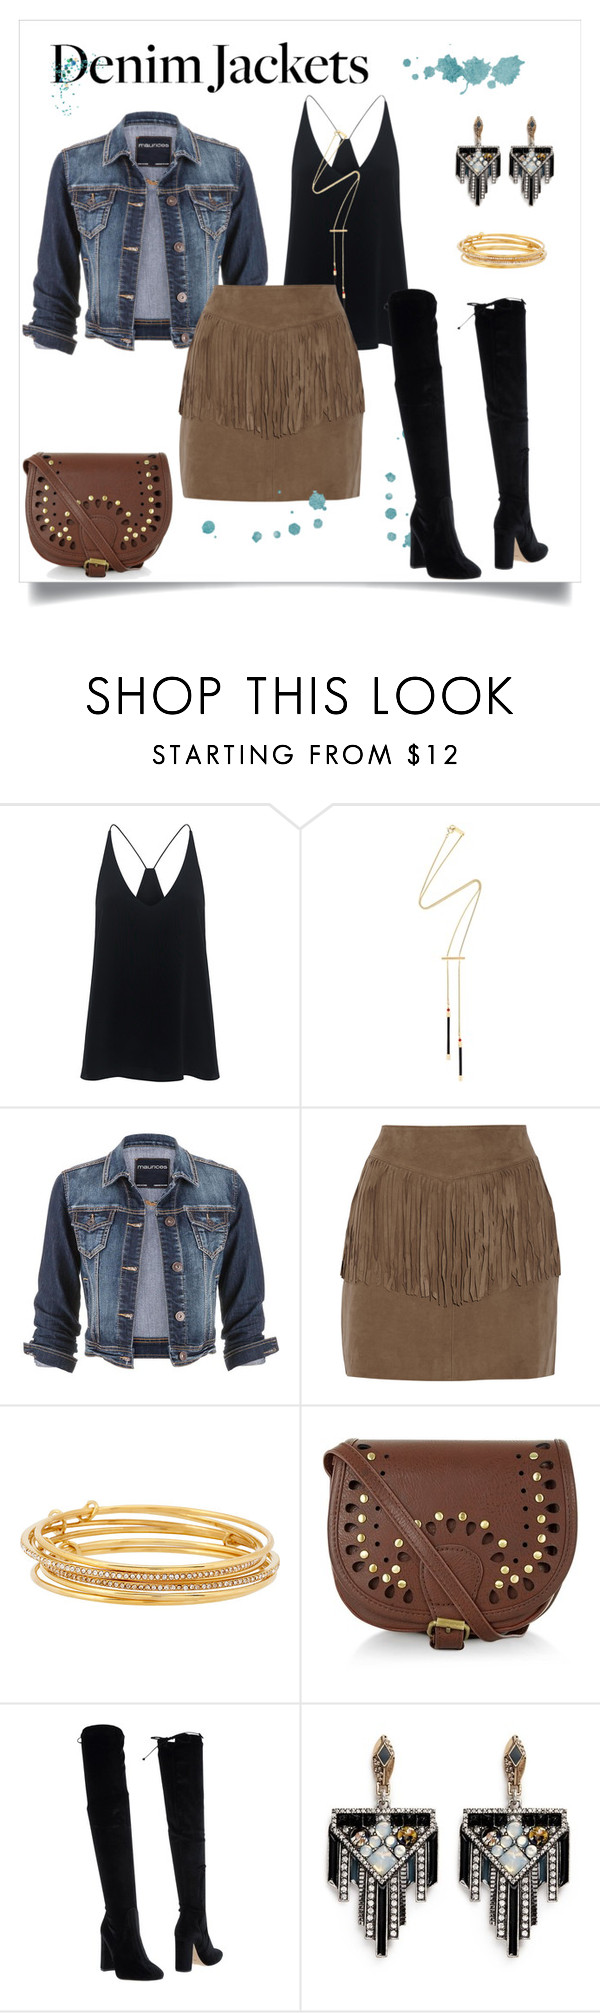 """Denim jacket suede skirts"" by morongo ❤ liked on Polyvore featuring TIBI, Isabel Marant, maurices, W118 by Walter Baker, Kate Spade, New Look, Bianca Di and Lulu Frost"